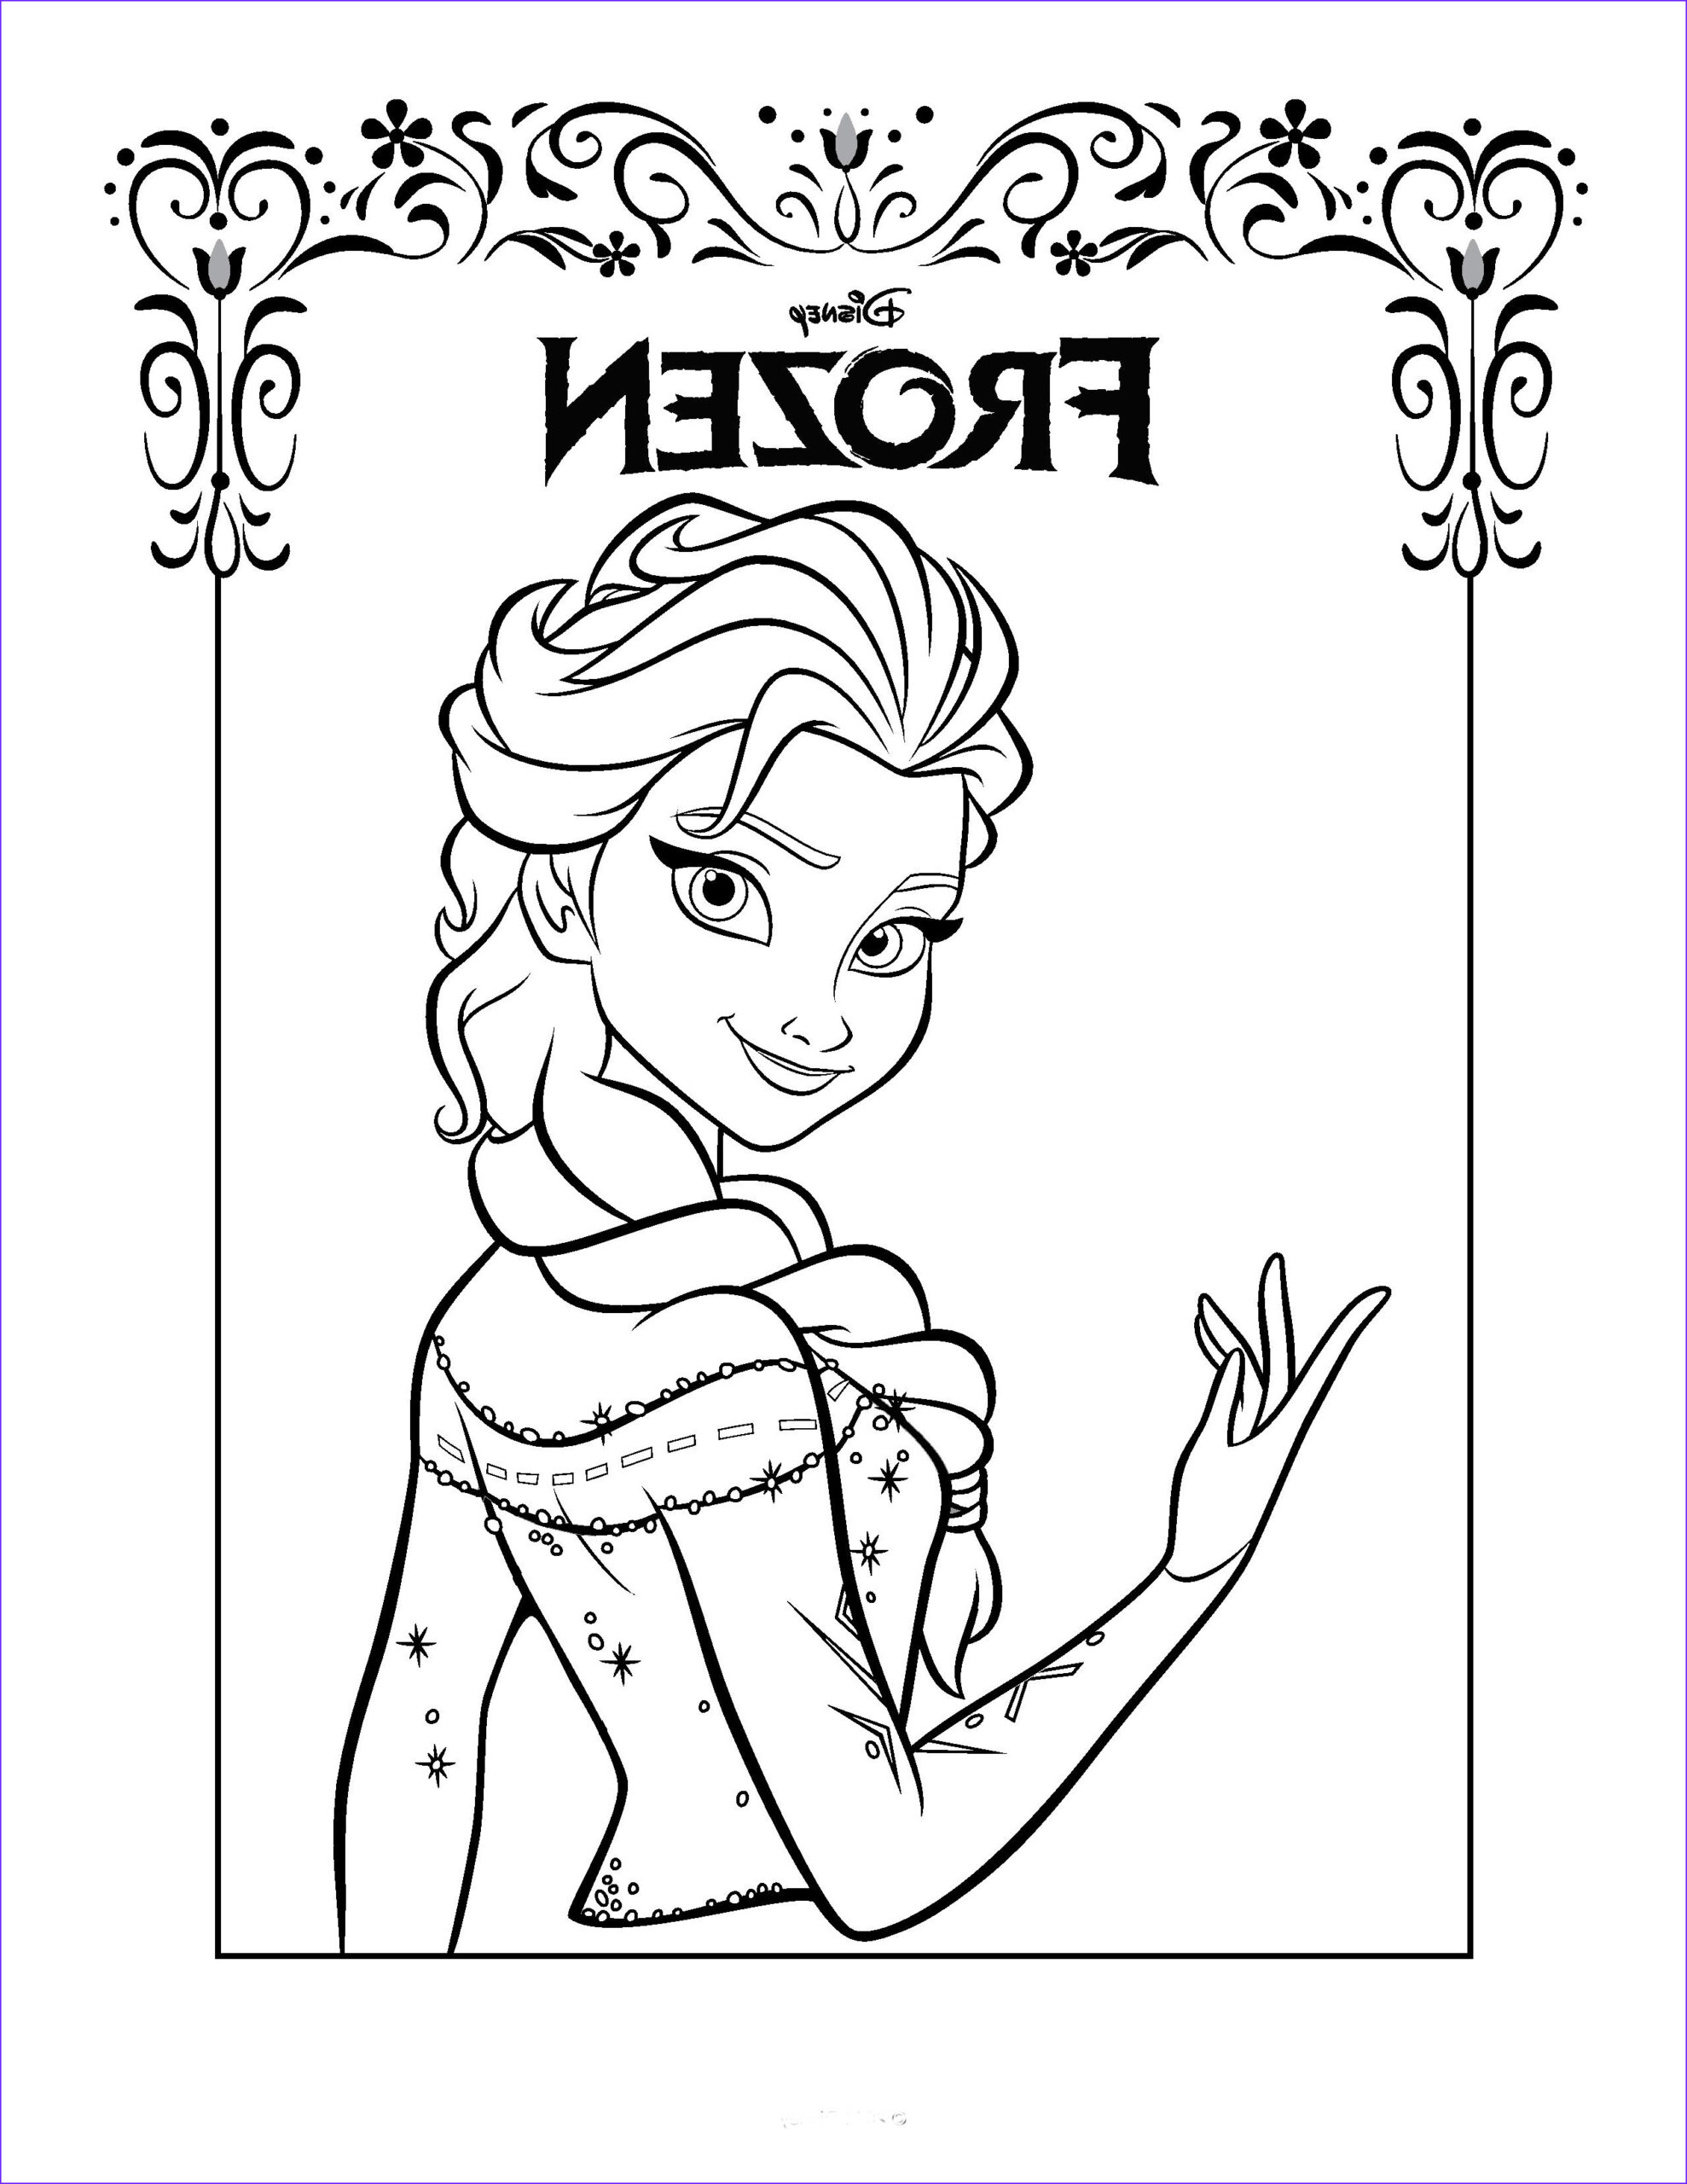 Coloring Pages For Kids Printable Unique Photos Free Printable Frozen Coloring Pages For Kids Best